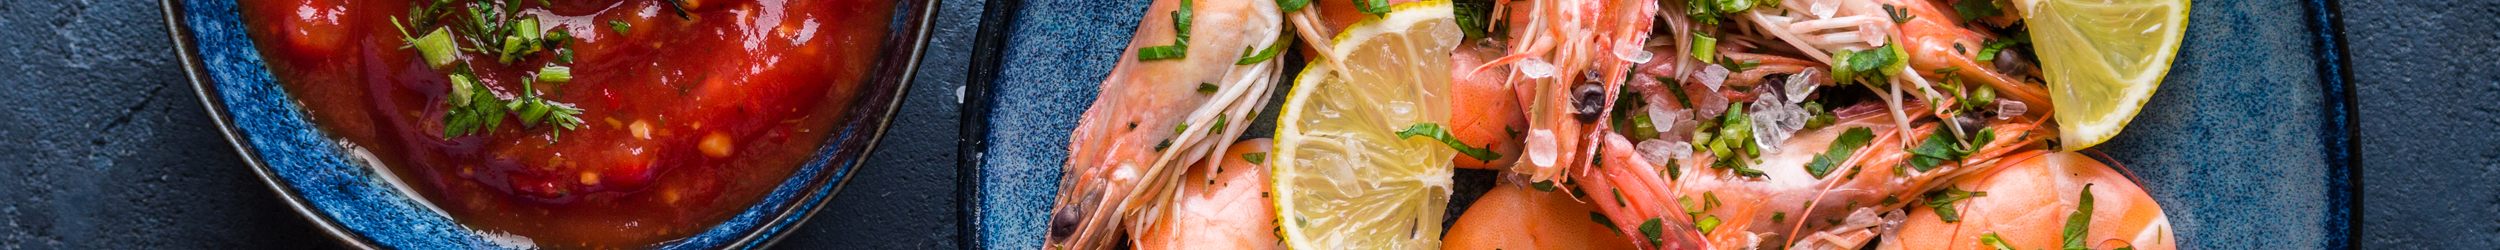 Plate of food for the Ber Street Hub Food business section header image